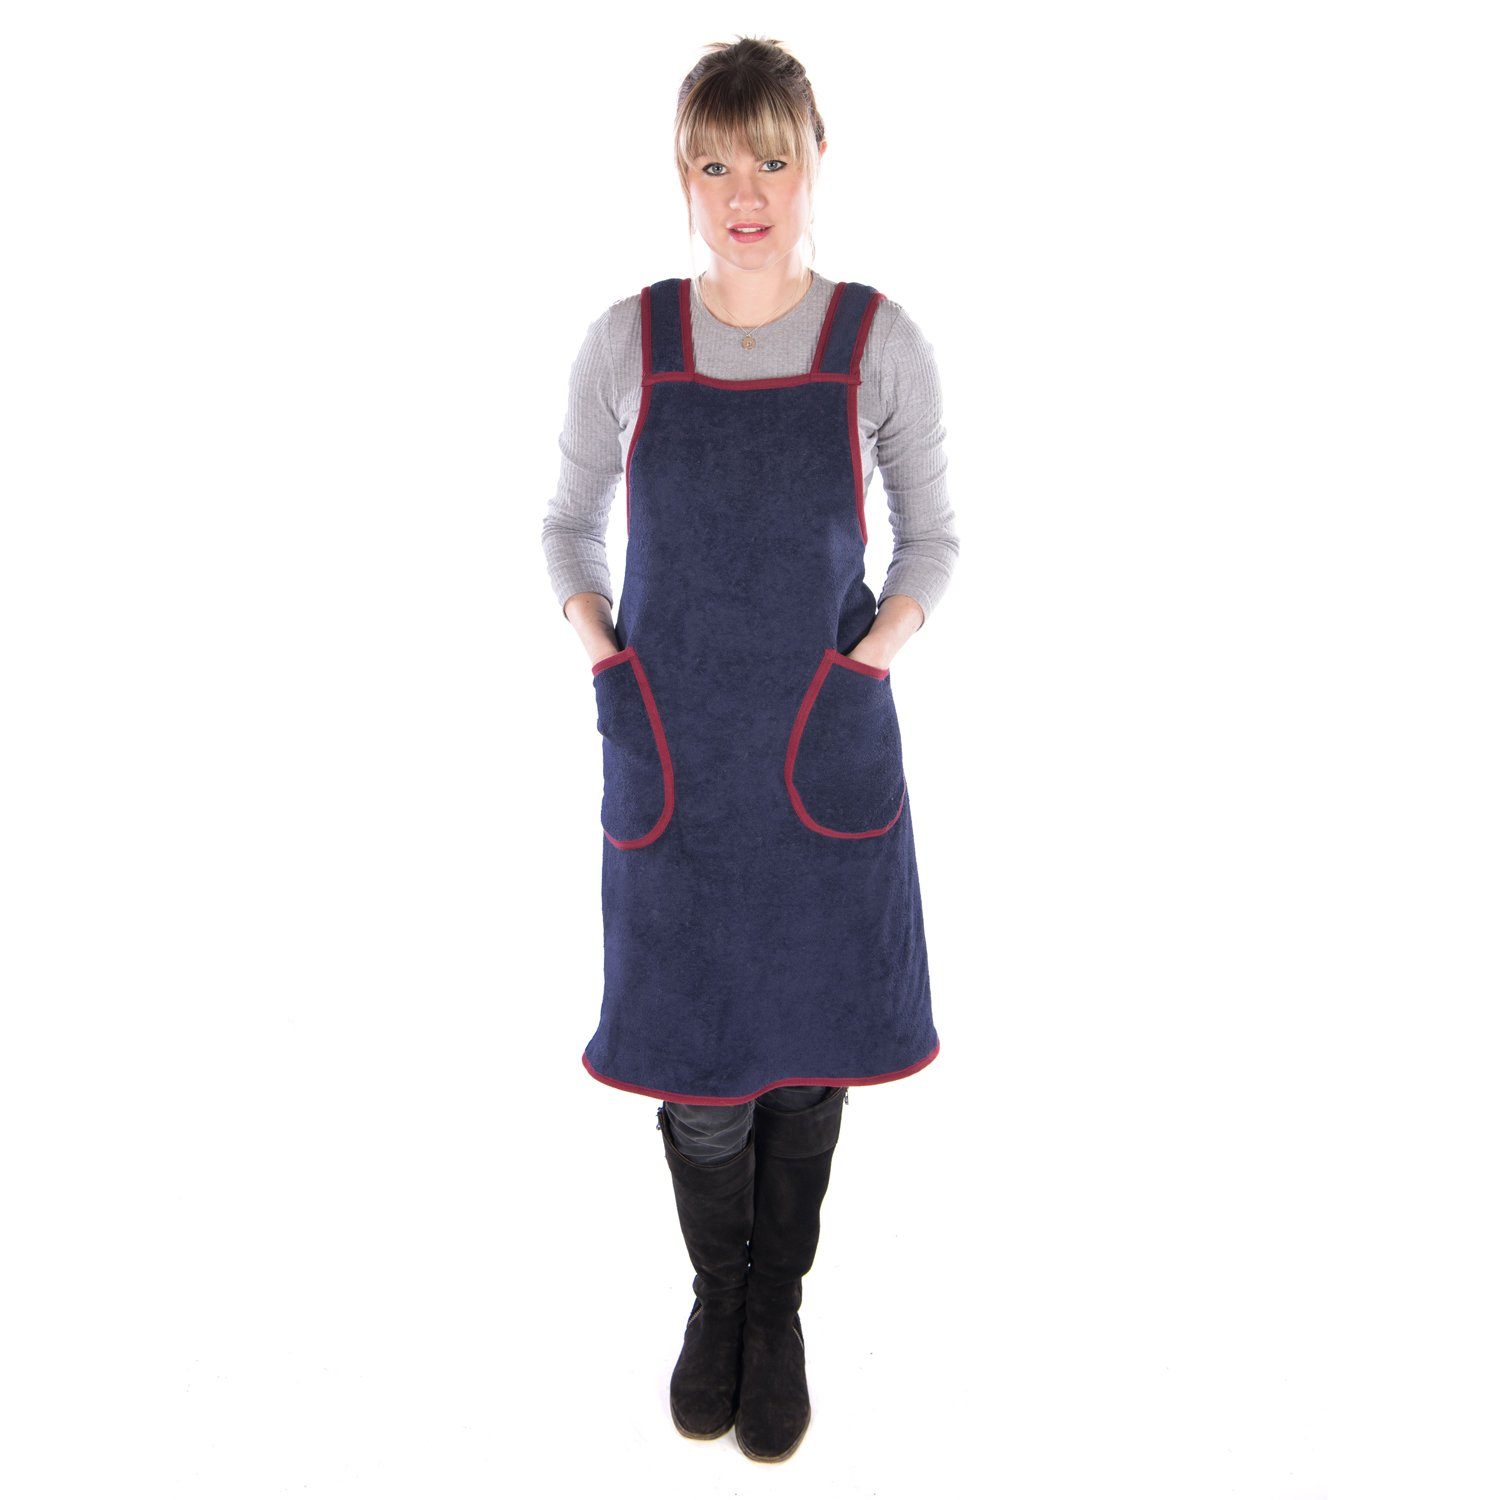 new-apron-3114-Edit_1500x1500